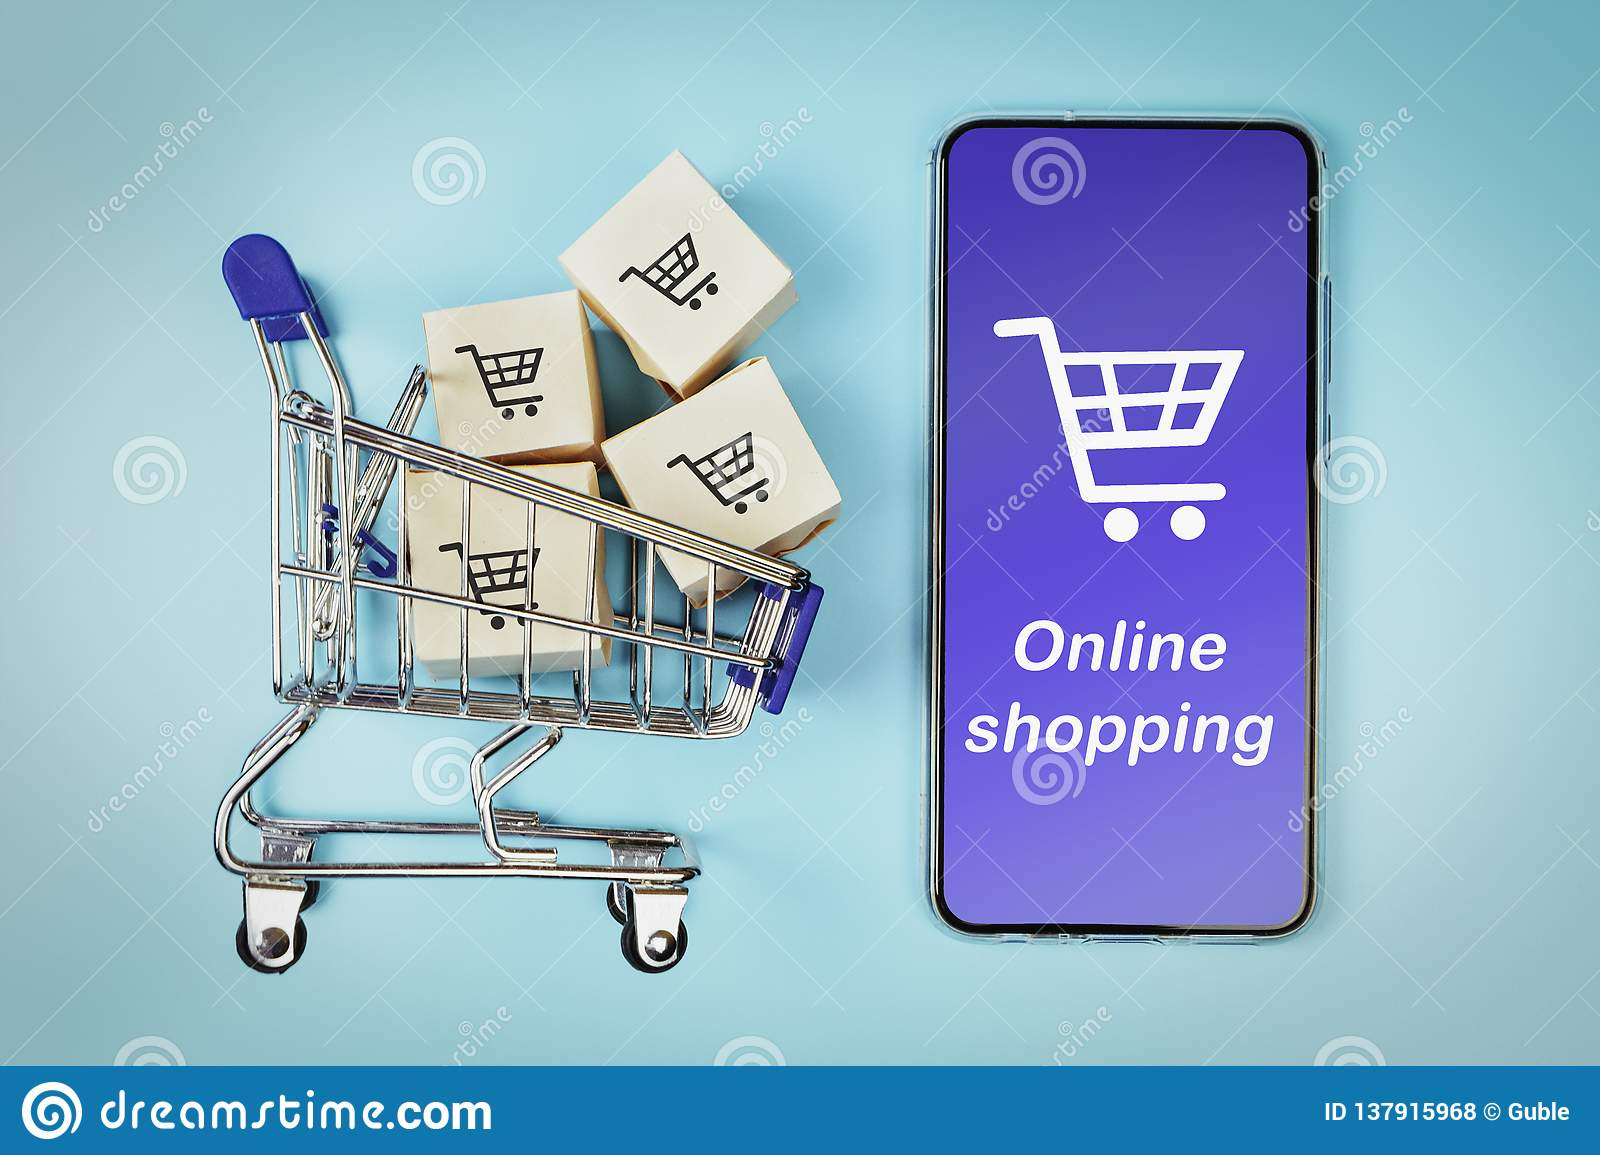 Boxes in a shopping cart and smartphone on blue background. Concept: online shopping, e commerce and delivery of goods